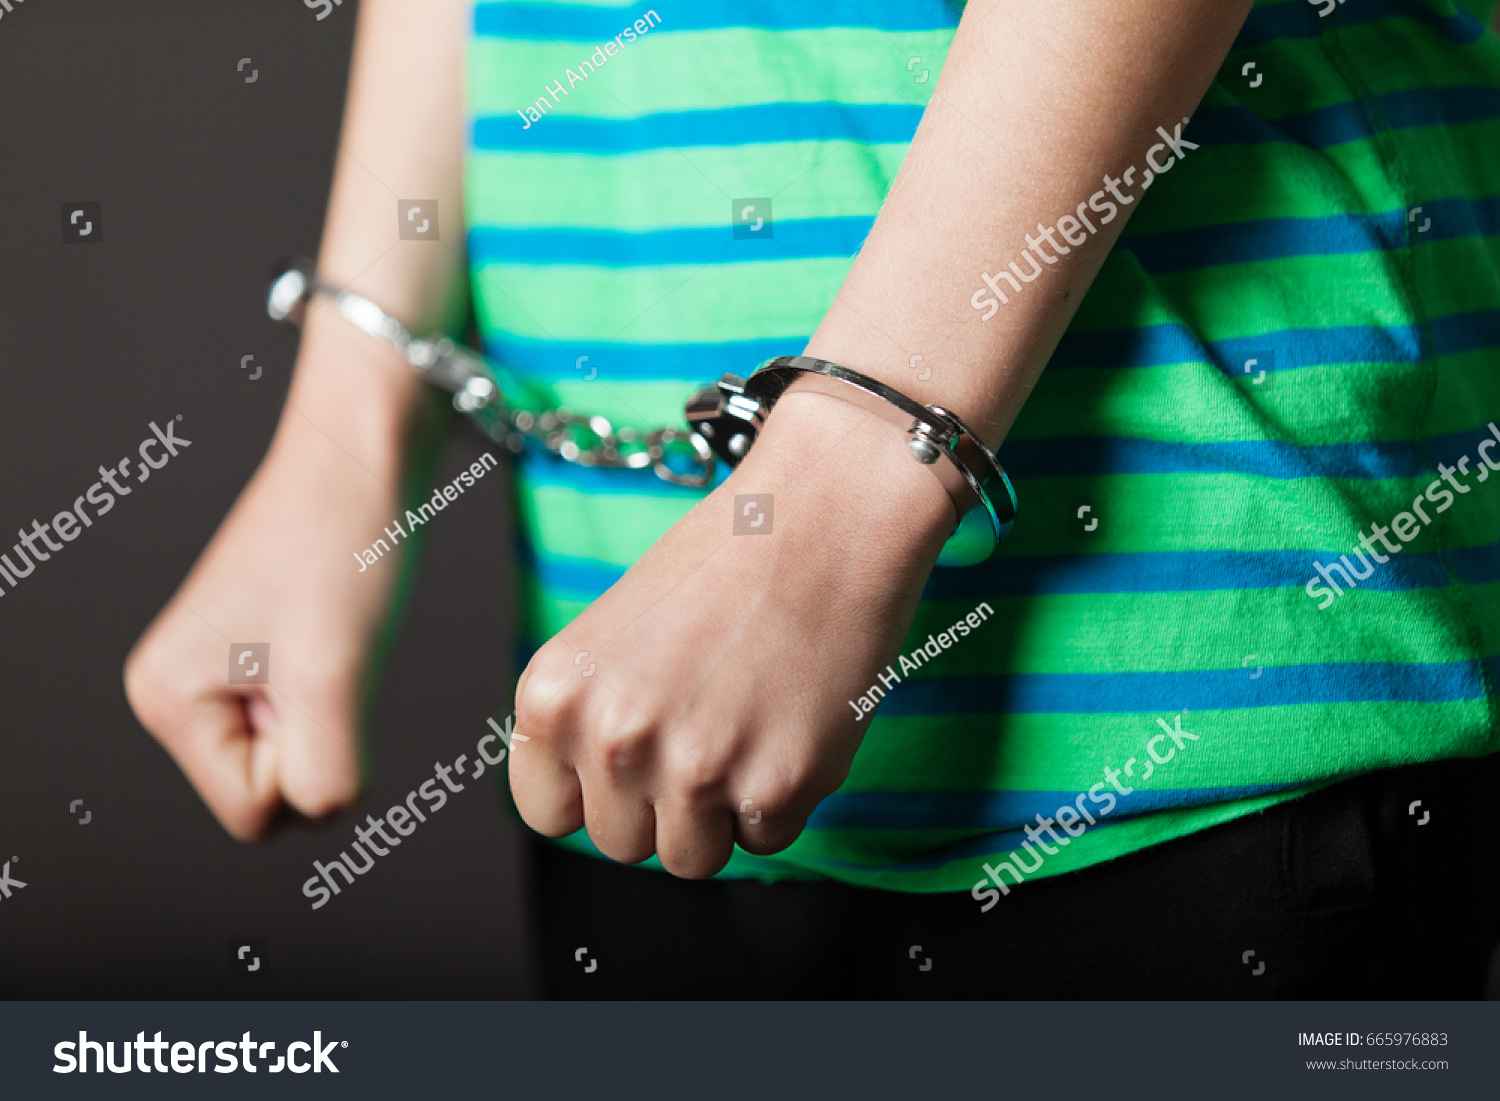 Close up on pair of hands from child or teenager in green and blue shirt tied with metal handcuffs #665976883